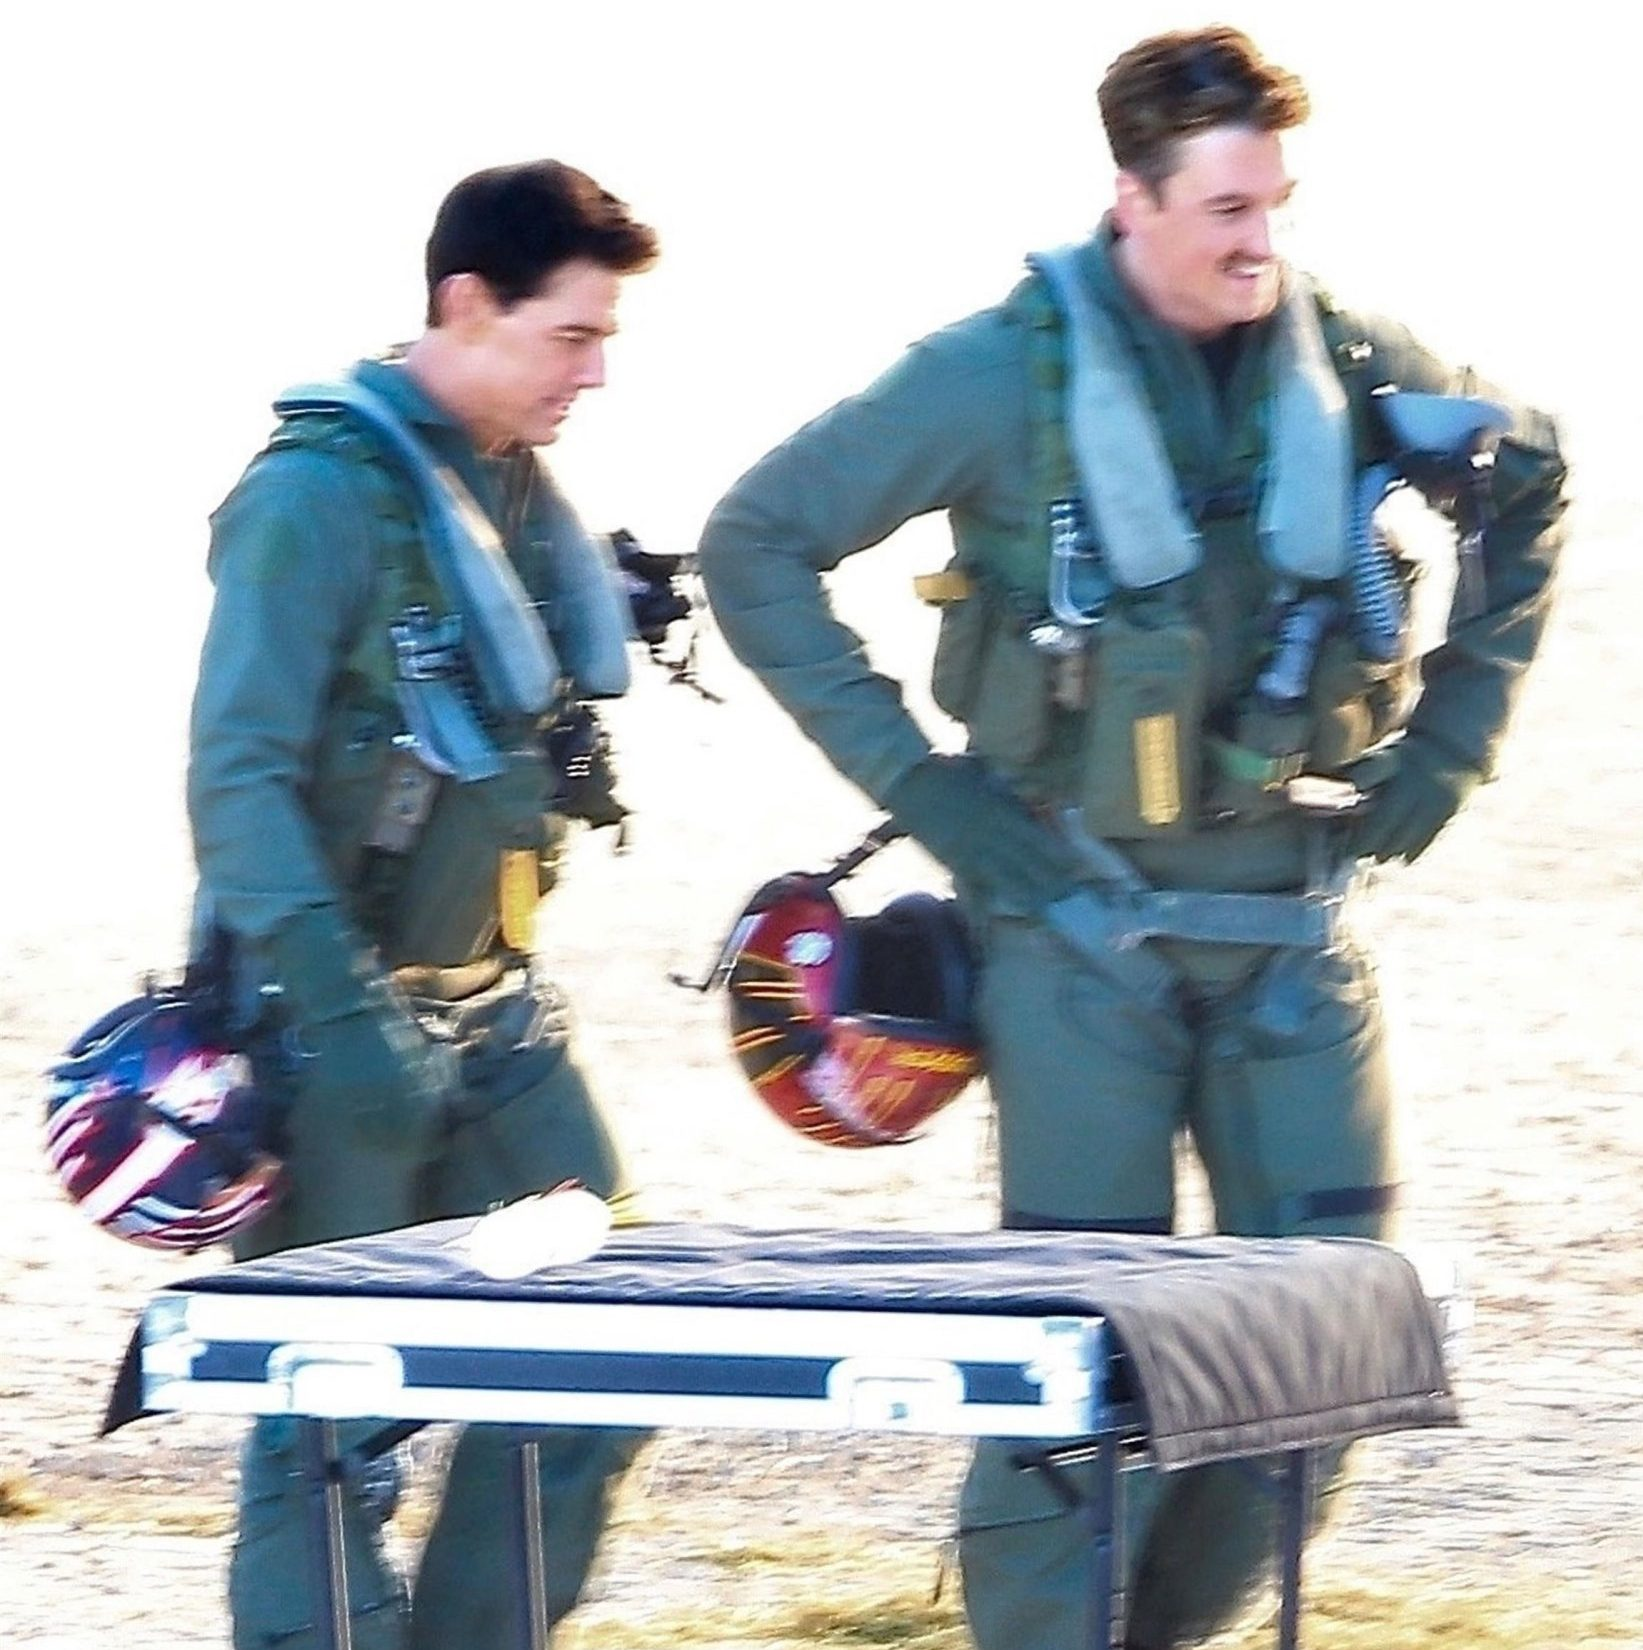 Lake Tahoe, CA - *EXCLUSIVE* - Actors Tom Cruise and Miles Teller were spotted filming action scenes in fighter pilot suits for their upcoming film 'Top Gun 2' on location in Lake Tahoe, California. Shot on 12/12/18. Pictured: Tom Cruise, Miles Teller BACKGRID USA 15 DECEMBER 2018 BYLINE MUST READ: W Blanco / BACKGRID USA: +1 310 798 9111 / usasales@backgrid.com UK: +44 208 344 2007 / uksales@backgrid.com *UK Clients - Pictures Containing Children Please Pixelate Face Prior To Publication*